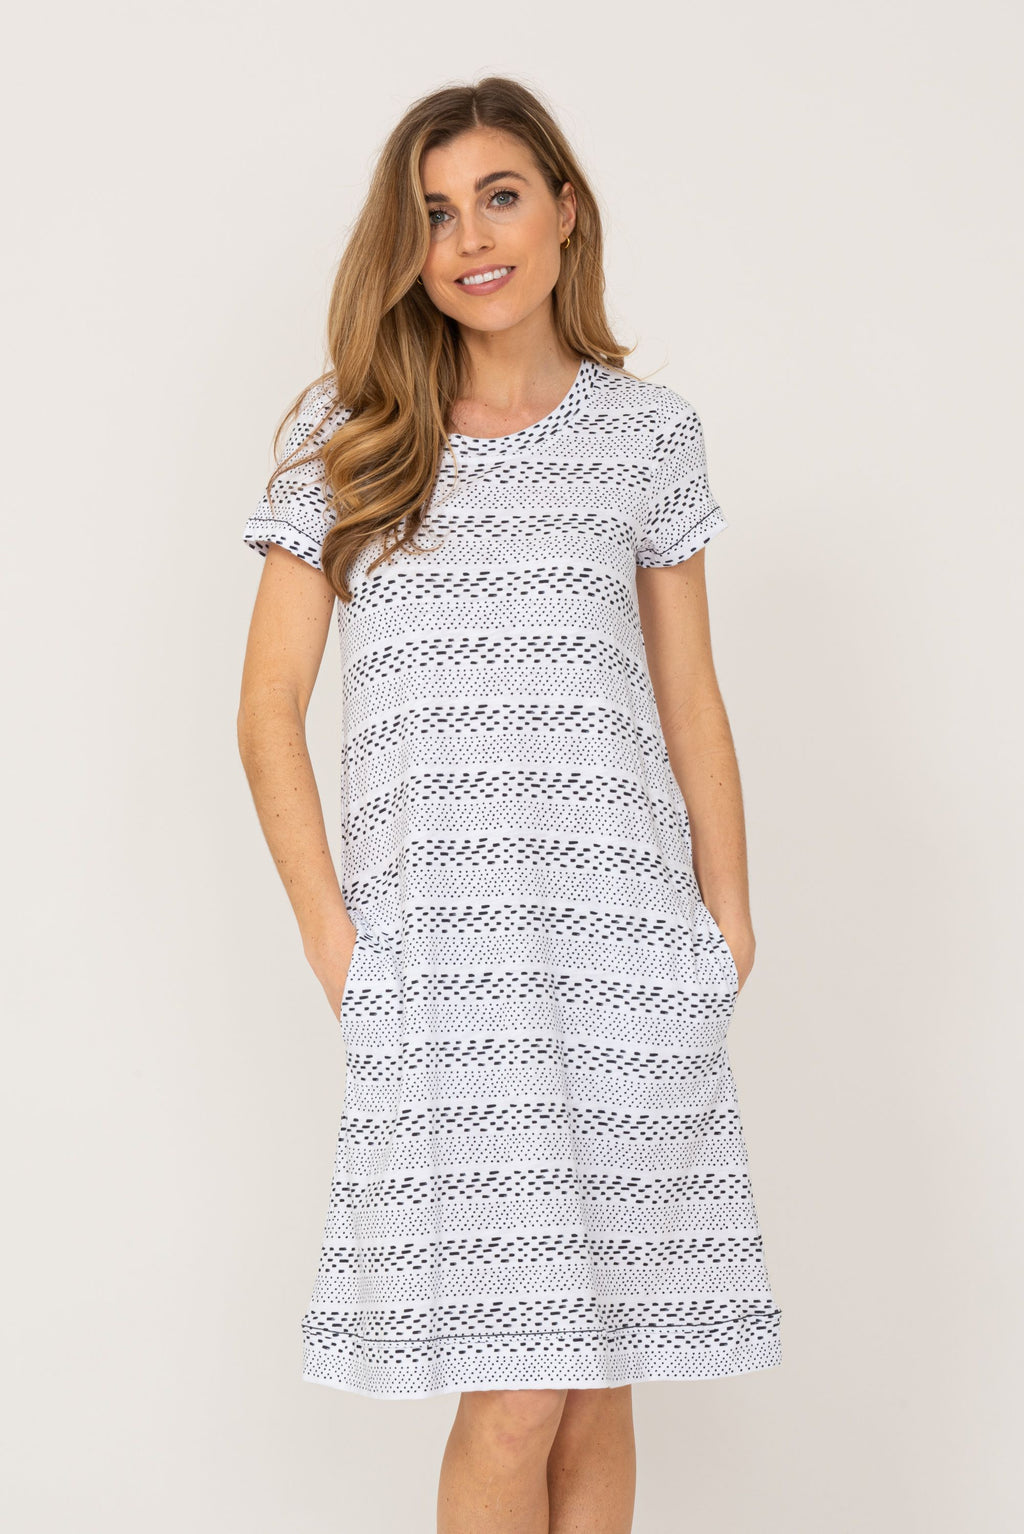 T- Shirt Dress by 'Foil' in White Dash